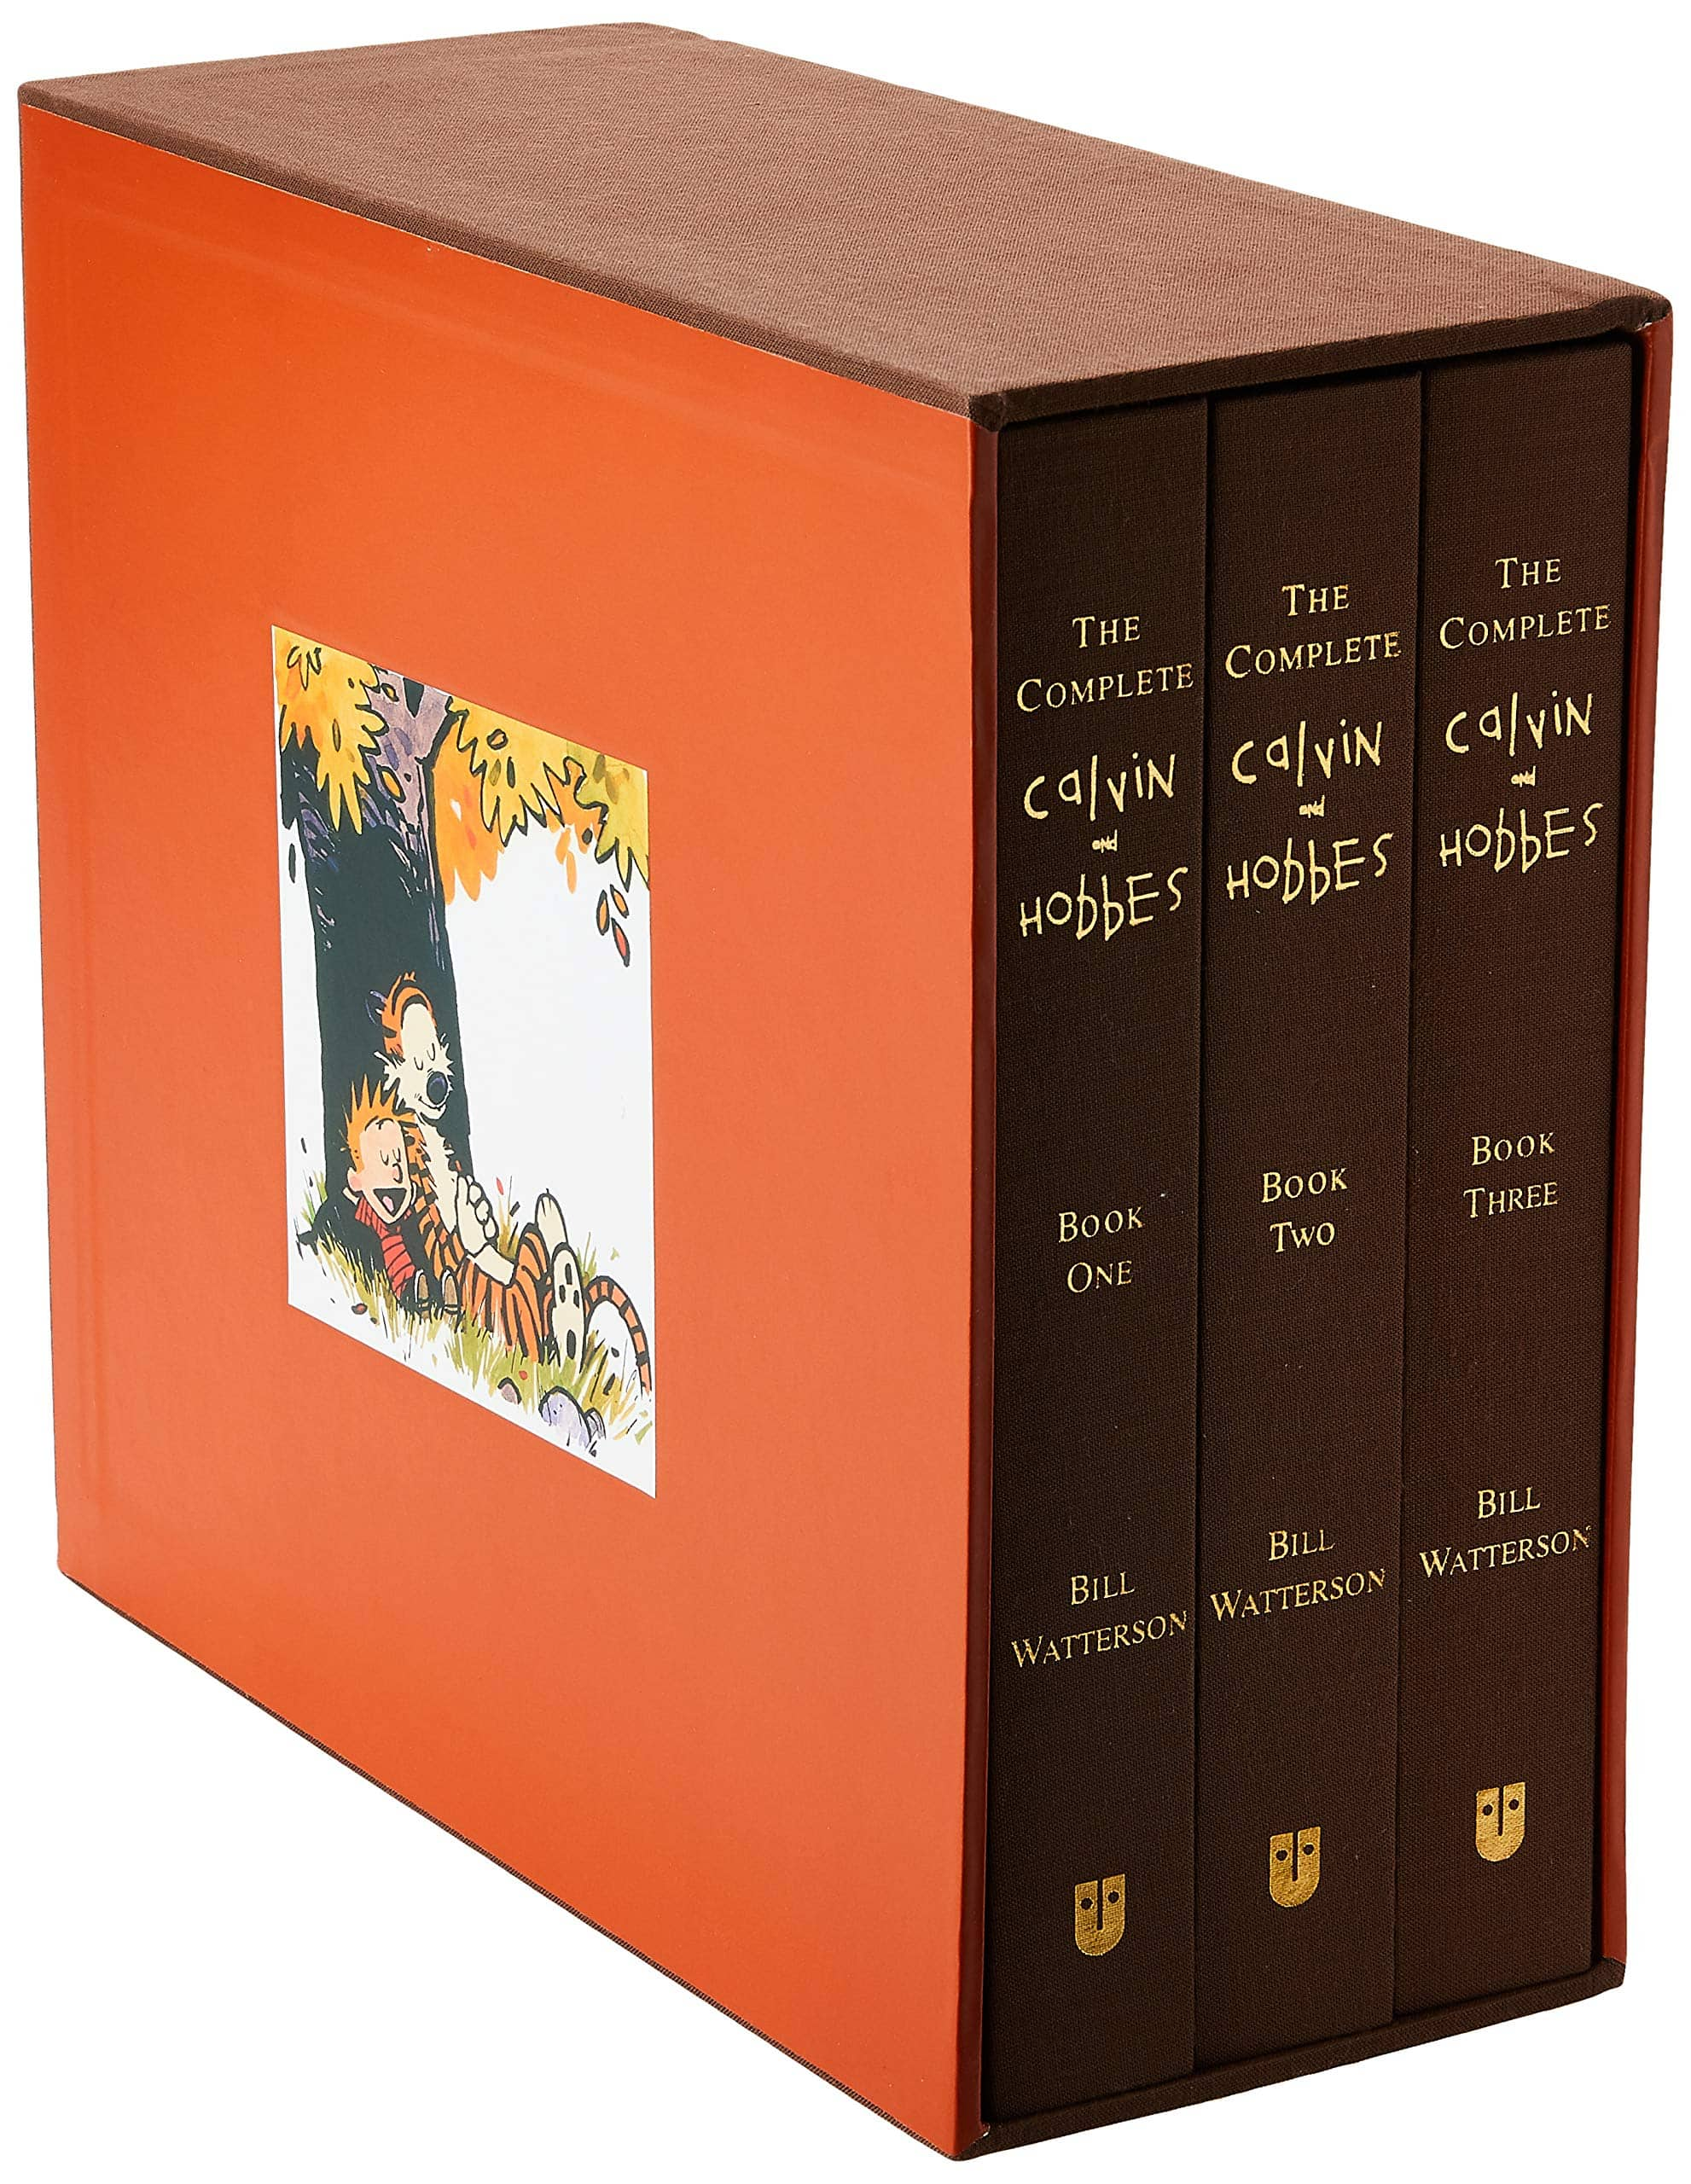 The Complete Calvin and Hobbes [Box Set] Hardcover $65.99